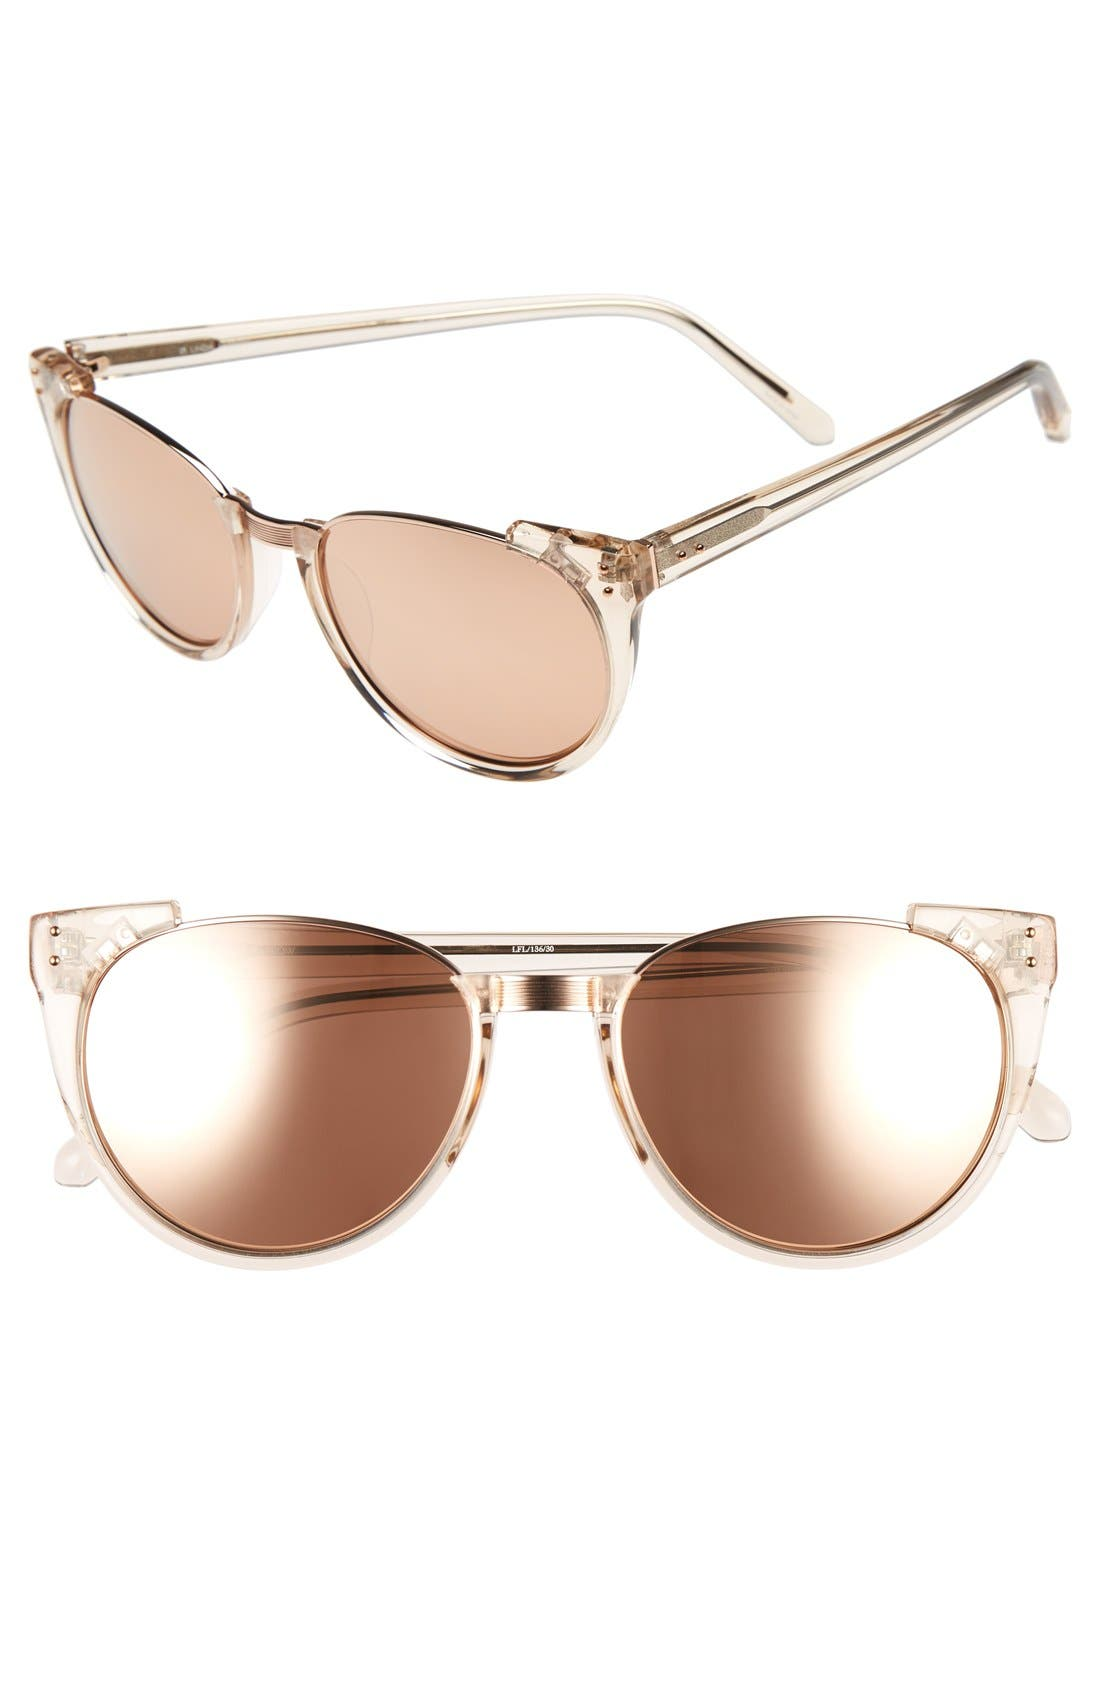 Linda Farrow 54mm 18 Karat Rose Gold Trim Retro Sunglasses